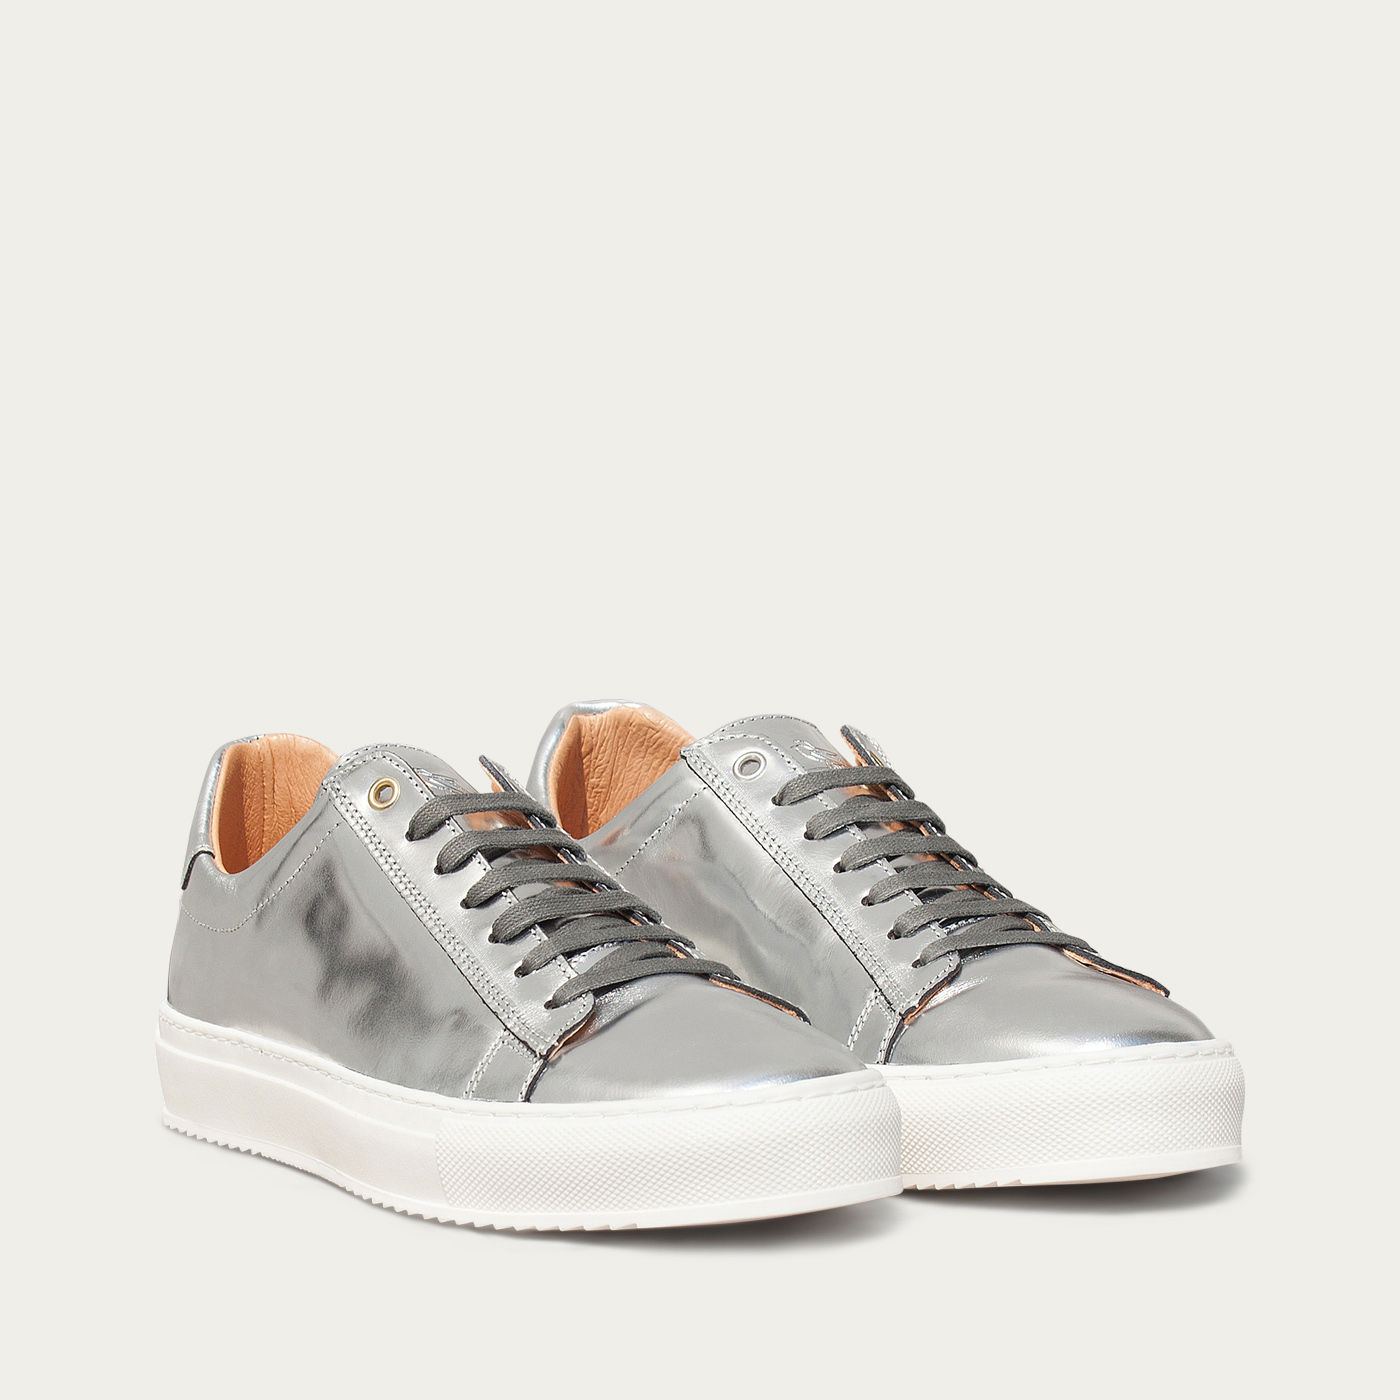 Mirror Leather Taranta Sneakers 3